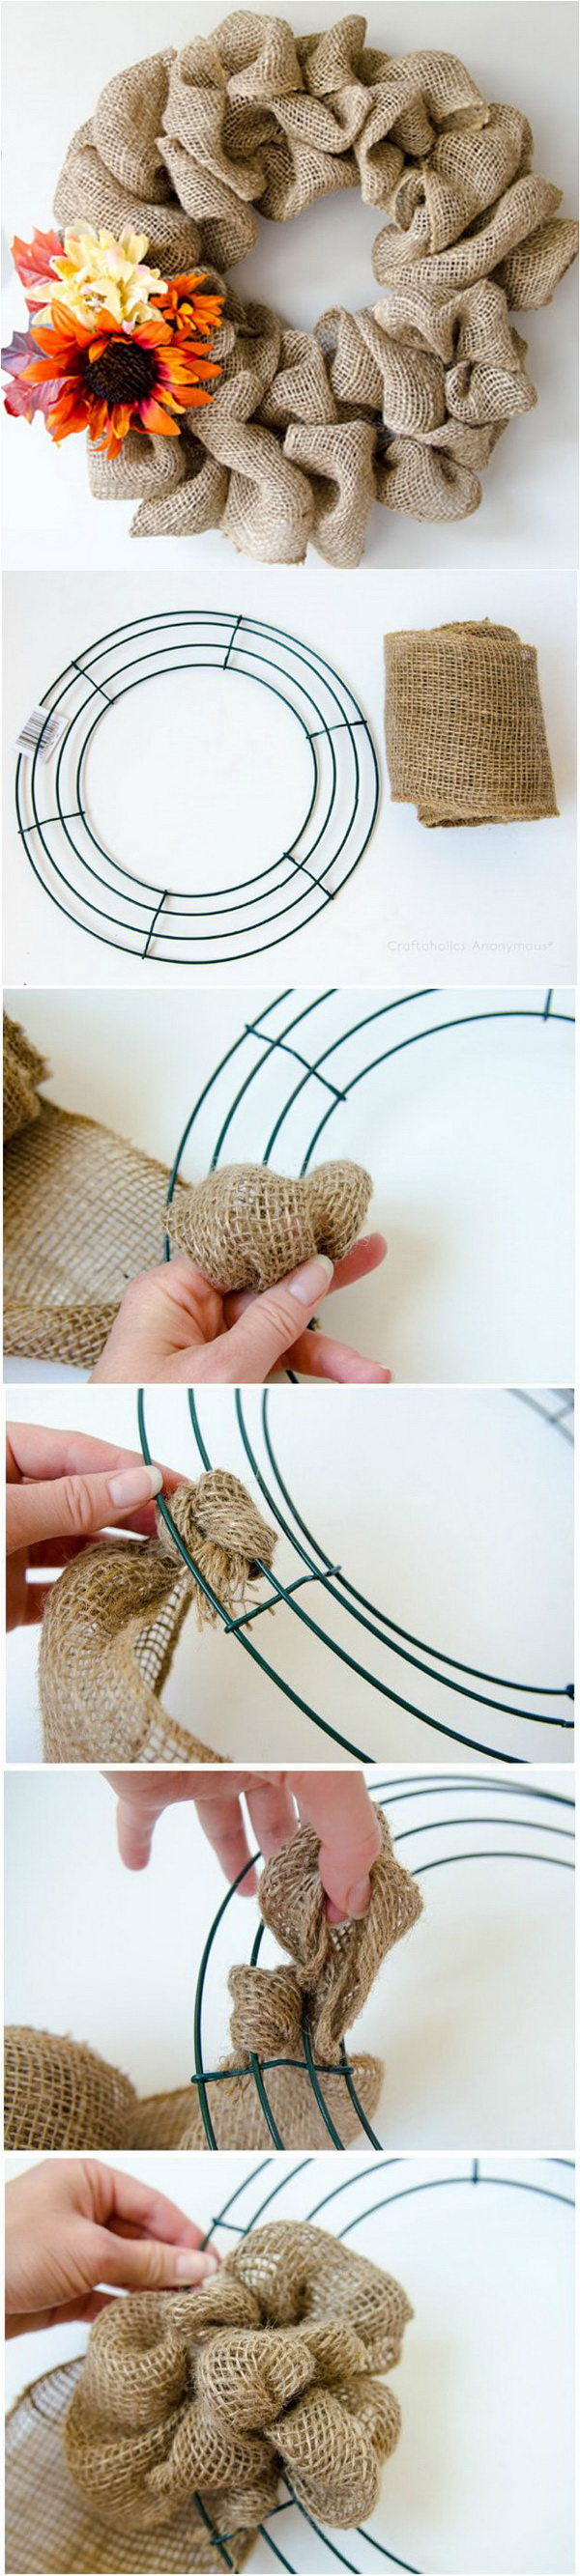 DIY Burlap Wreath For Fall. A quick and easy burlap wreath for the inside or outside decor for fall. It exudes a typical Fall feel. You can do it in just 15 minutes!